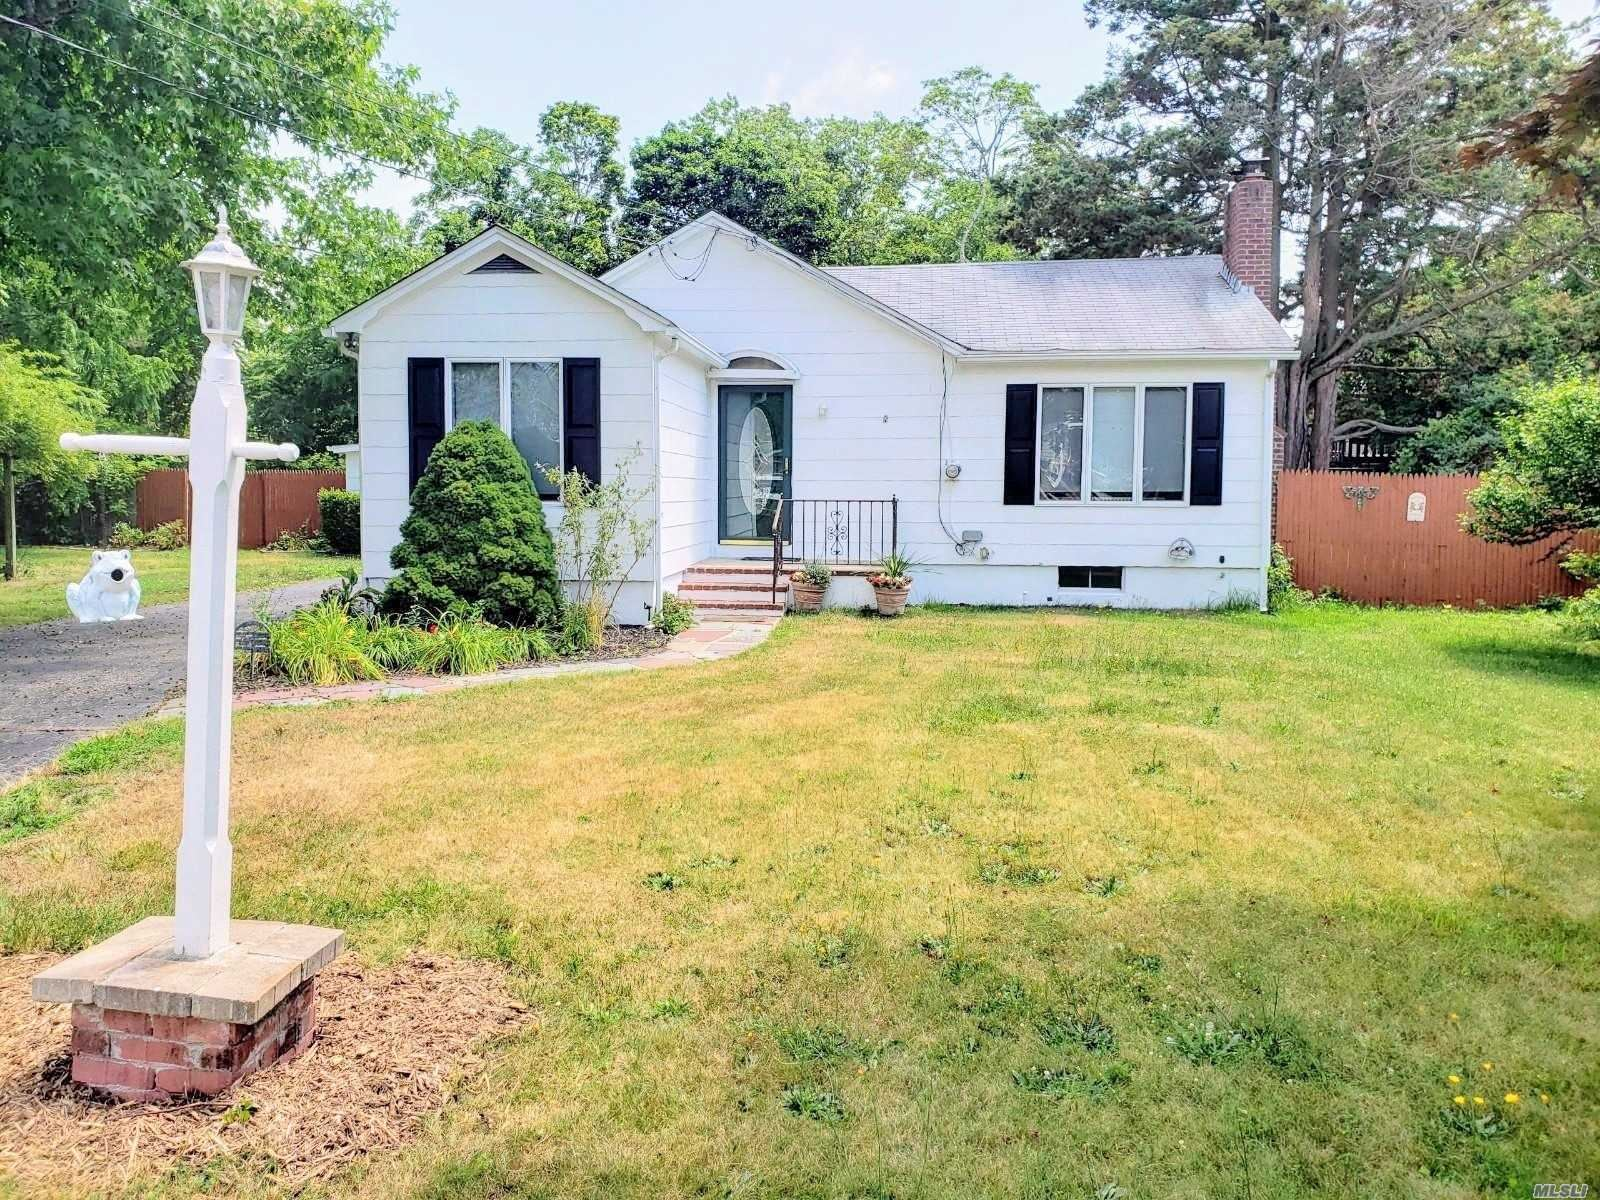 253 Rider Avenue, Patchogue, NY 11772 - MLS#: 3236496